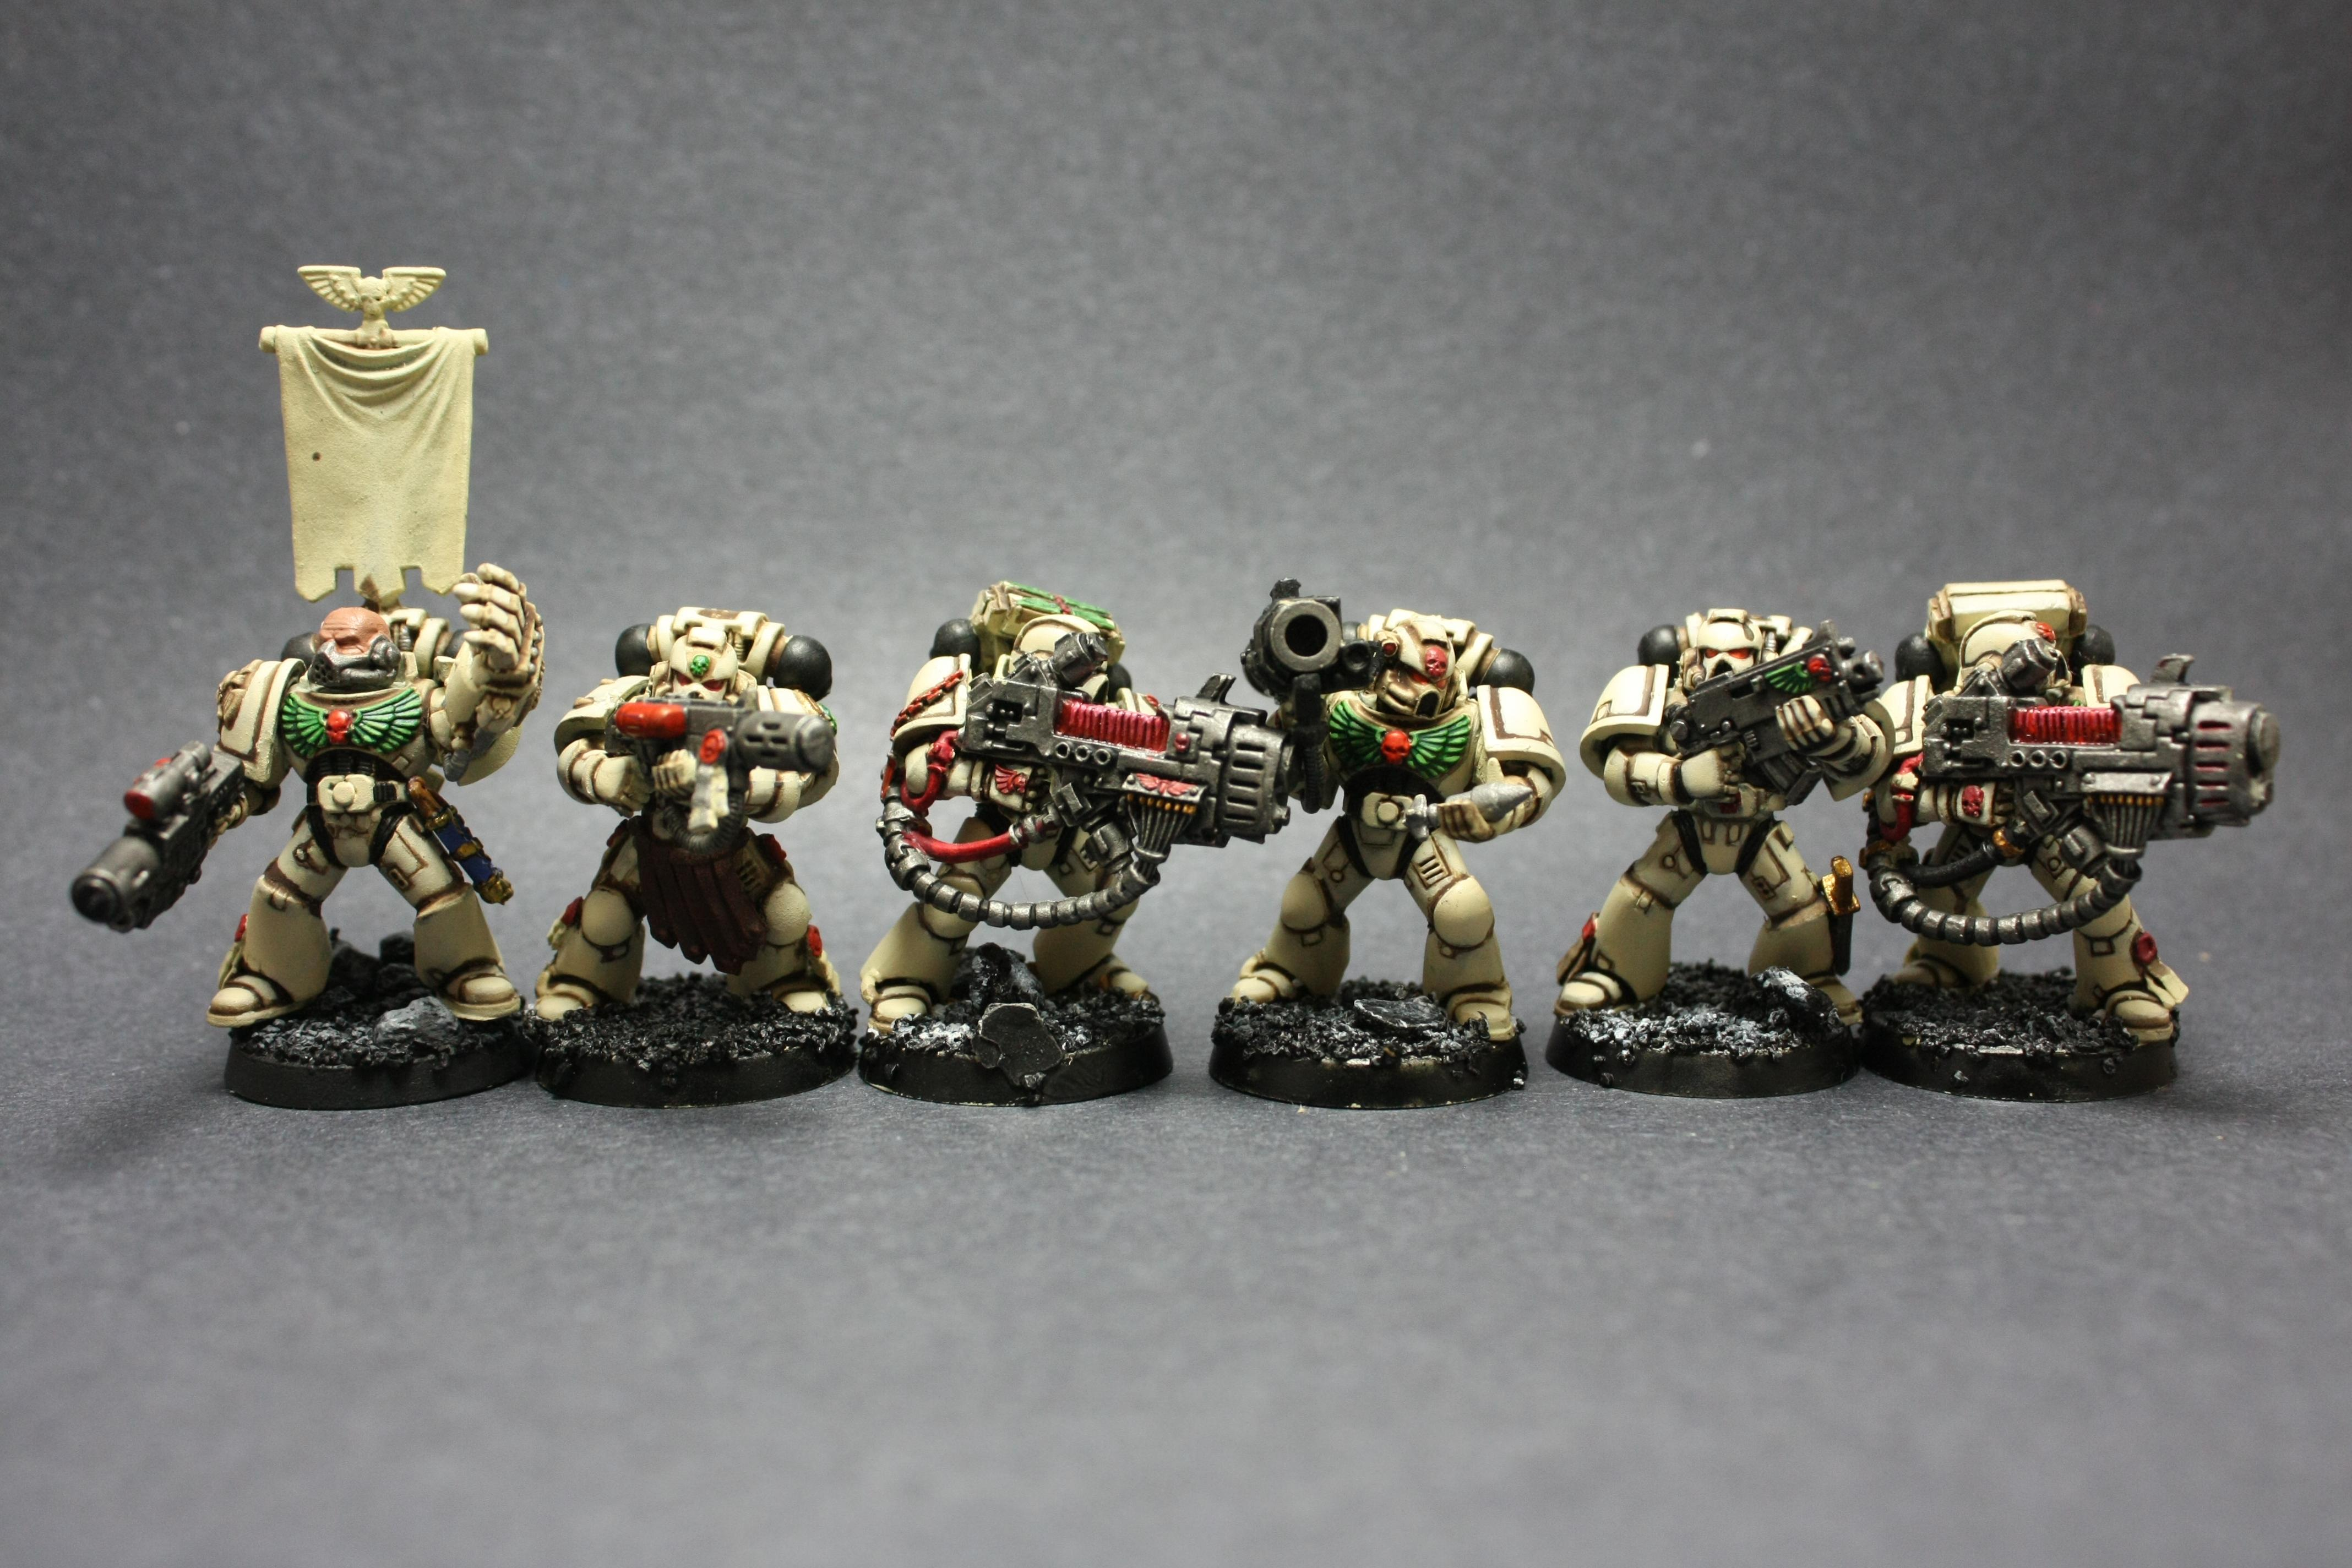 Do you notice that the combi-melta is converted?